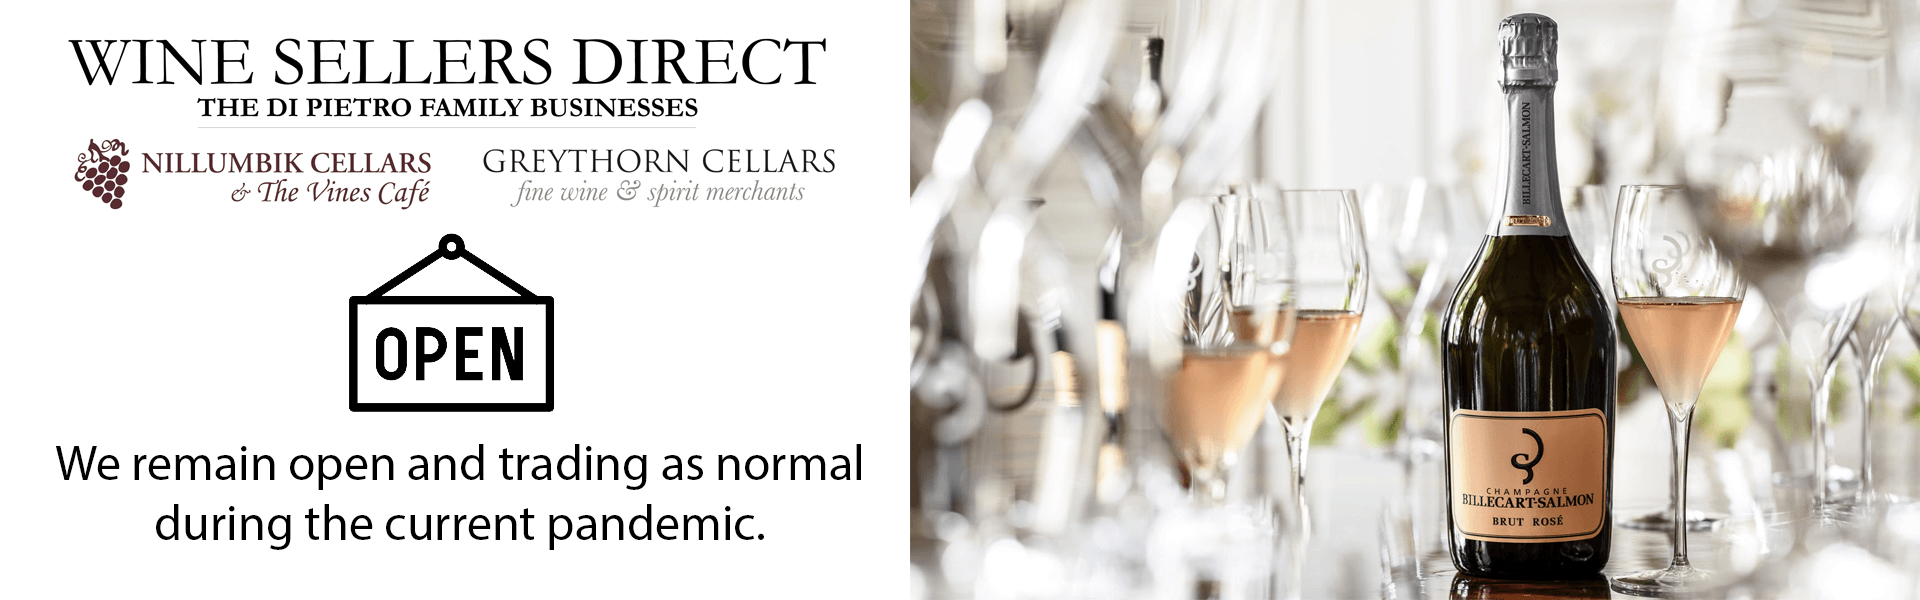 Wine Sellers Direct - Open and trading as normal. Check out the Billecart-Salmon Brut Rosé available here.